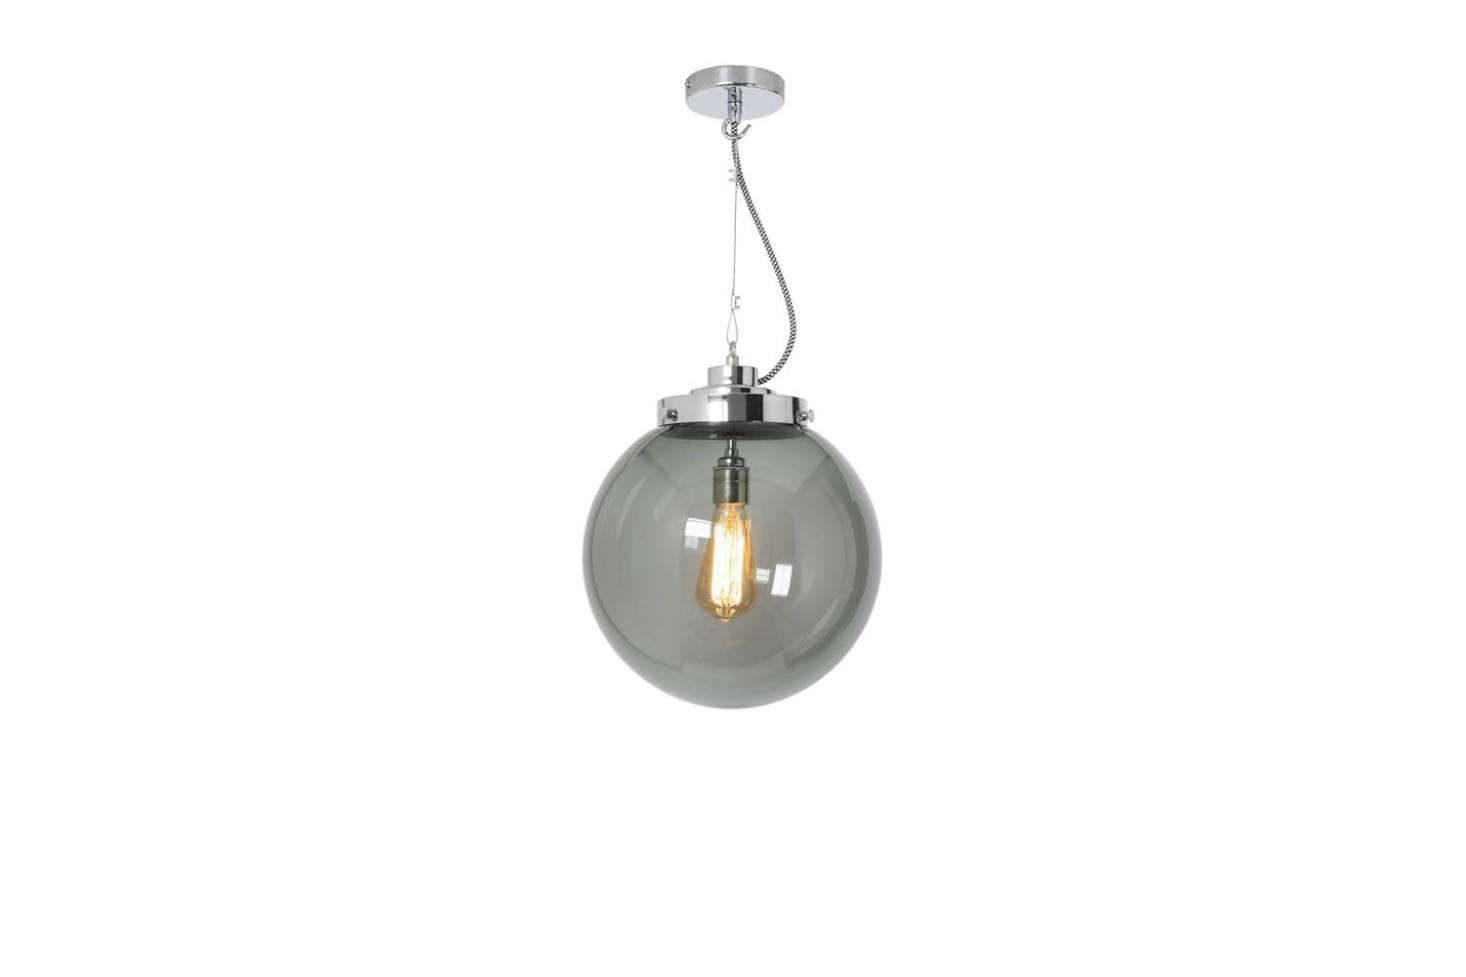 Made by British lighting company Original BTC, the Brume Pendant comes in three sizes; $839 to $1,499 at Original BTC.